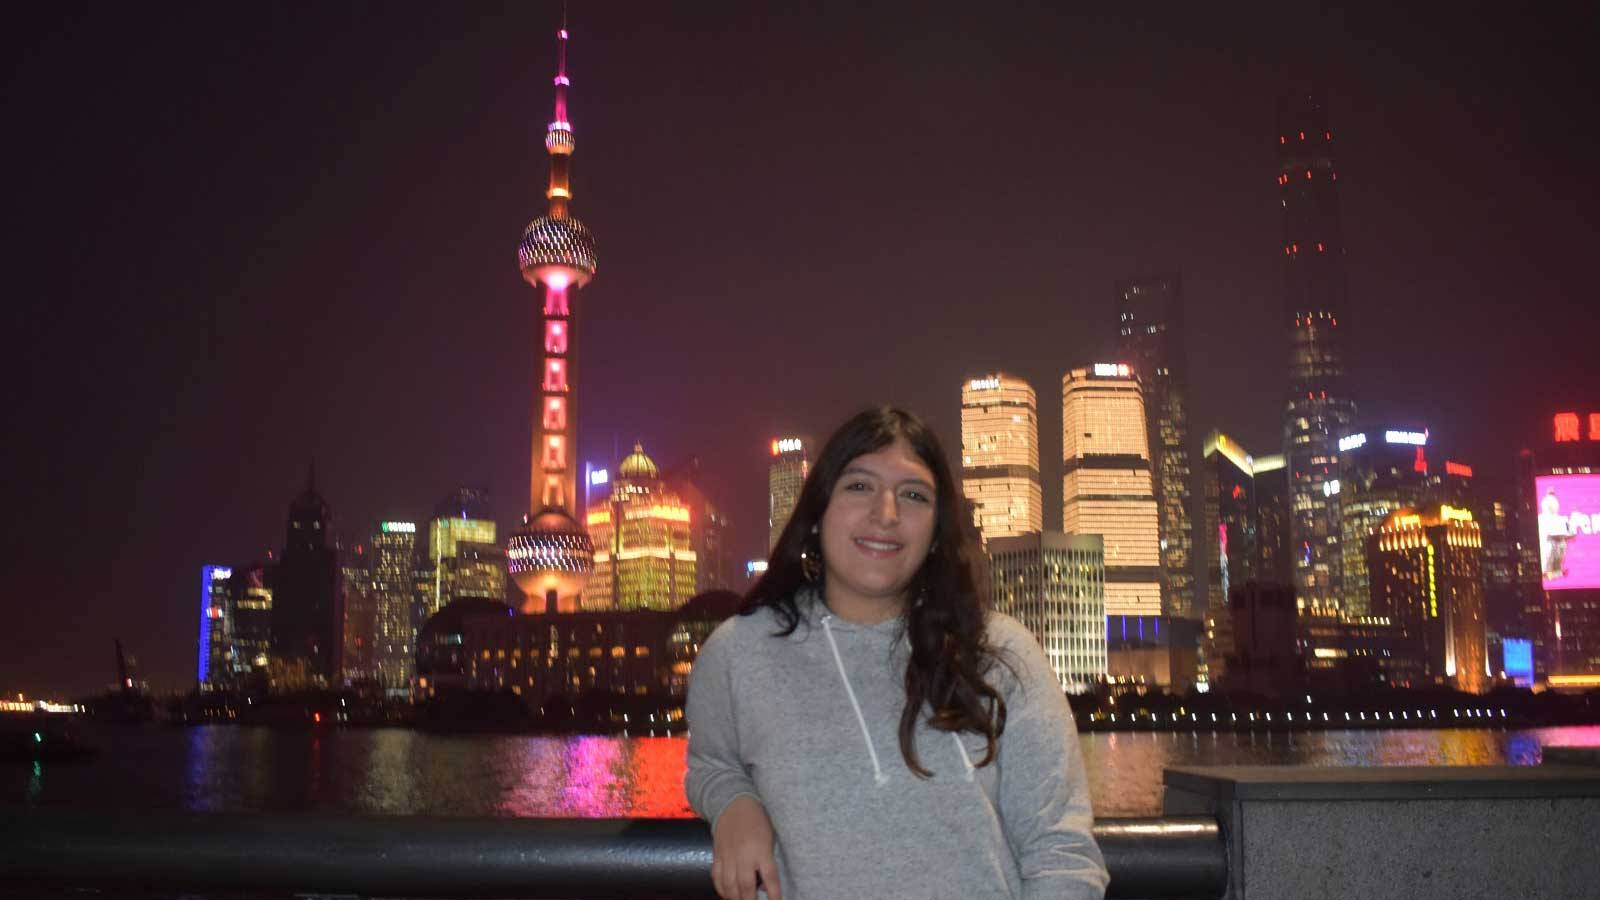 Elizabeth Gonzales in front of the illuminated Singapore skyline at night